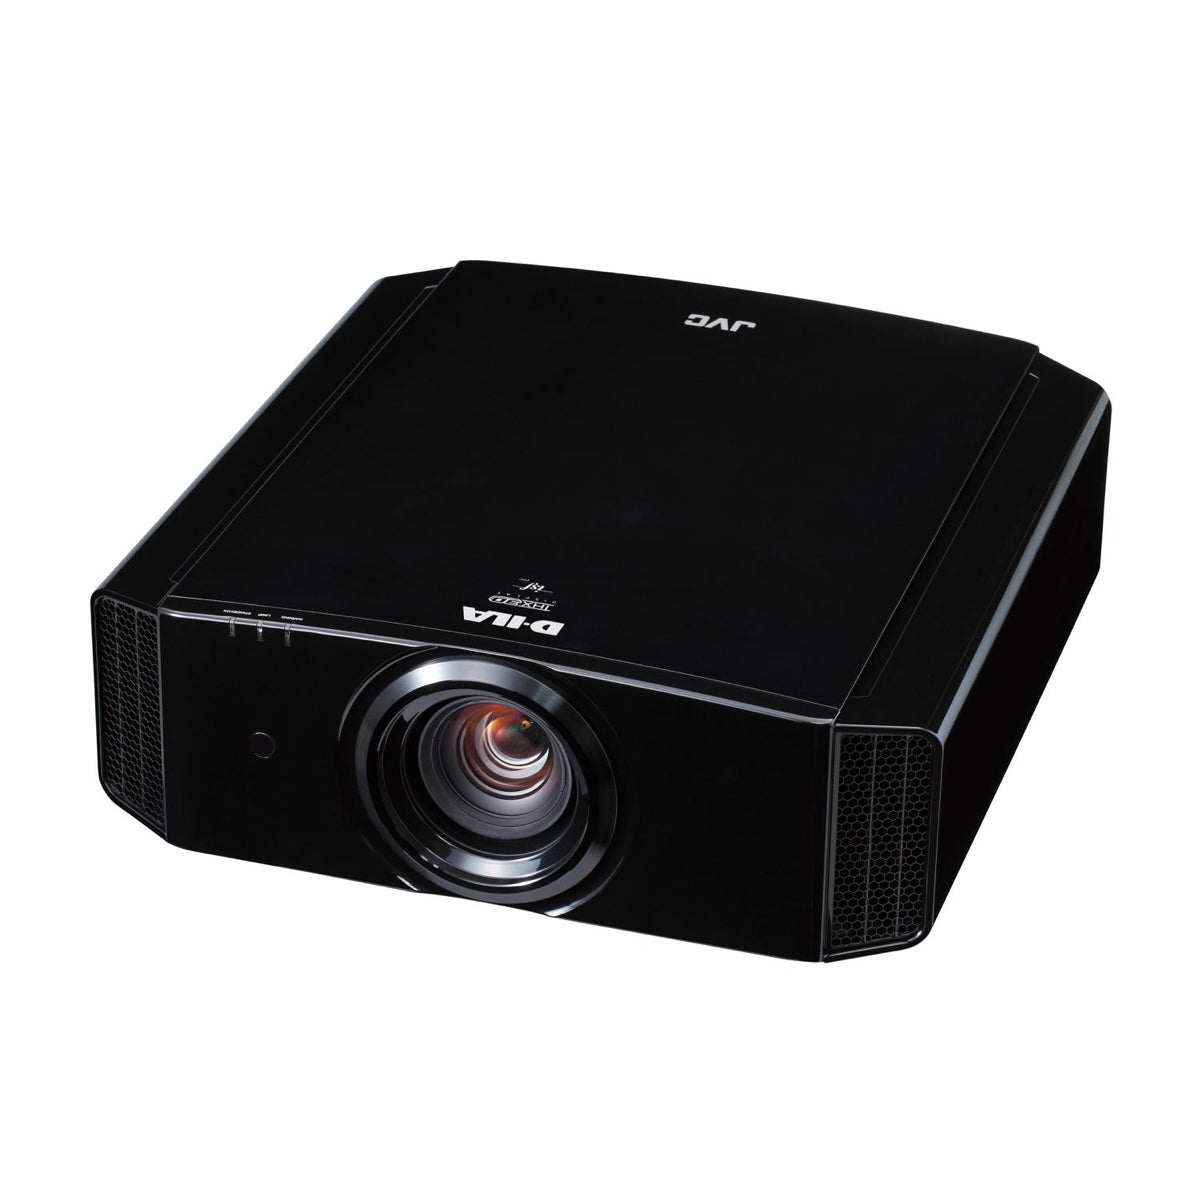 JVC DLA-X7900BE (4K e-shift5 Projector) - AVStore